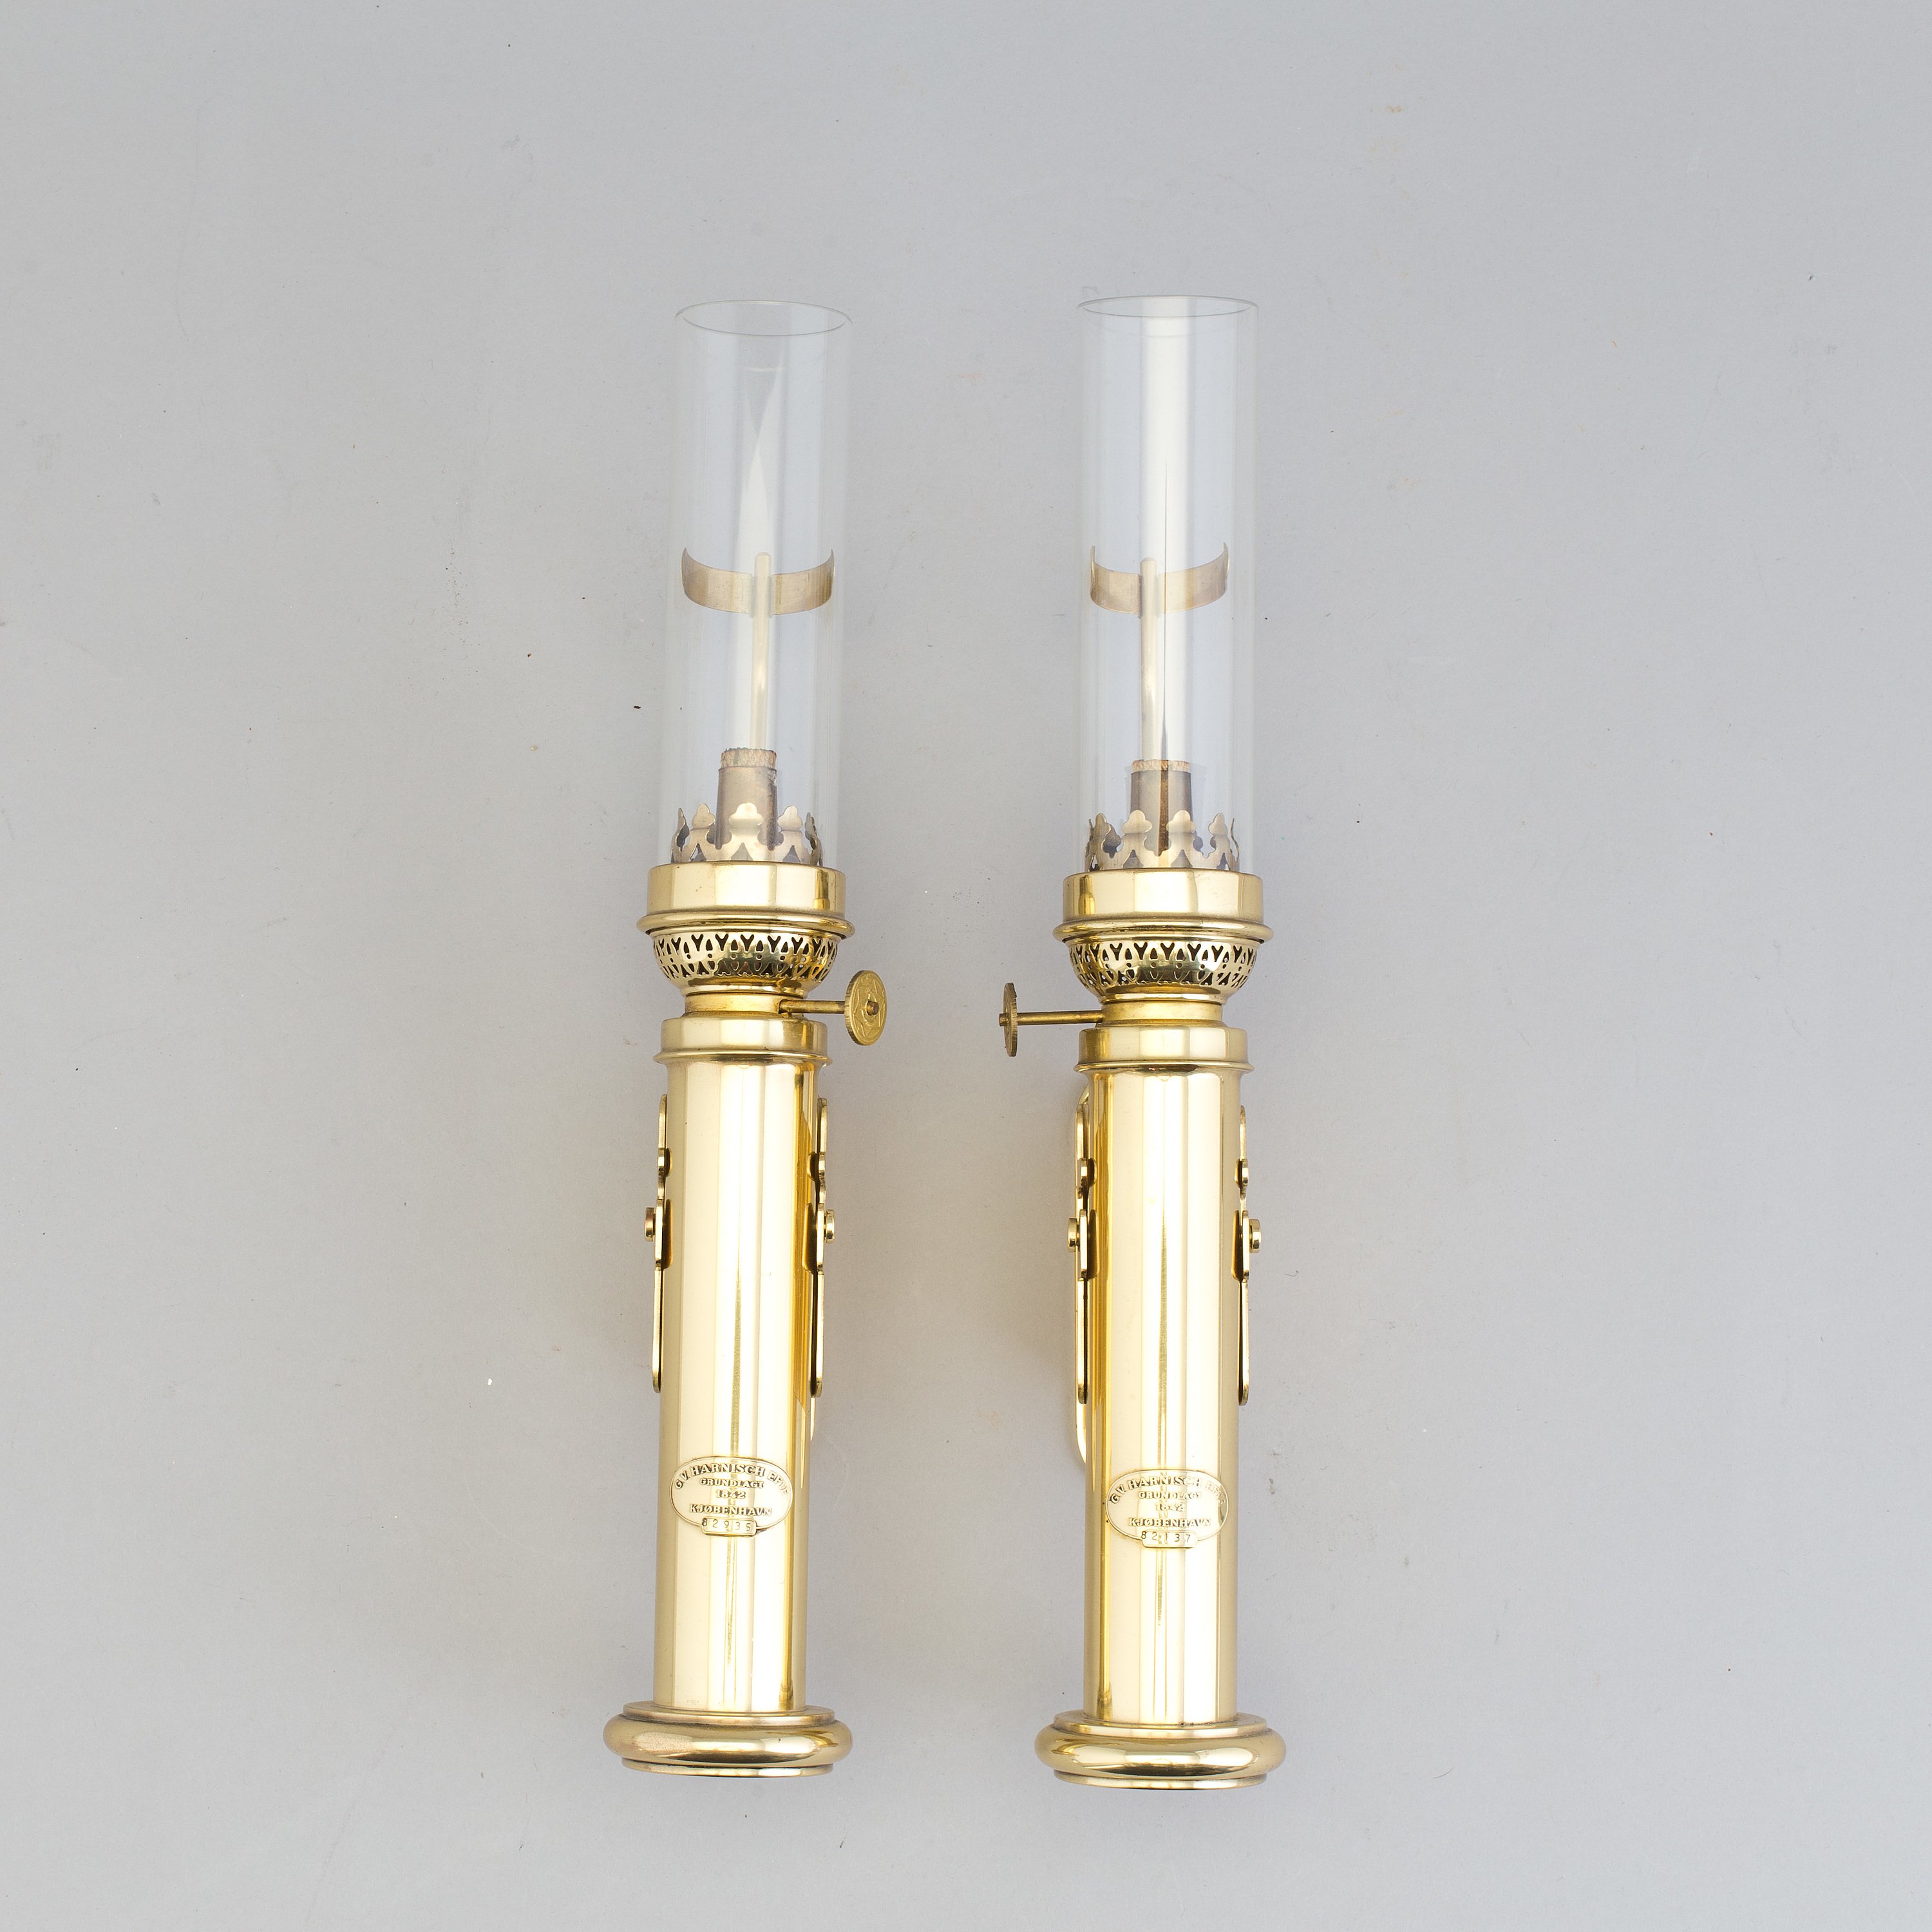 Modern Kerosene Lamp A Pair Of Brass Kerosene Lamps Gv Harnisch Eftr Copenhagen 20th